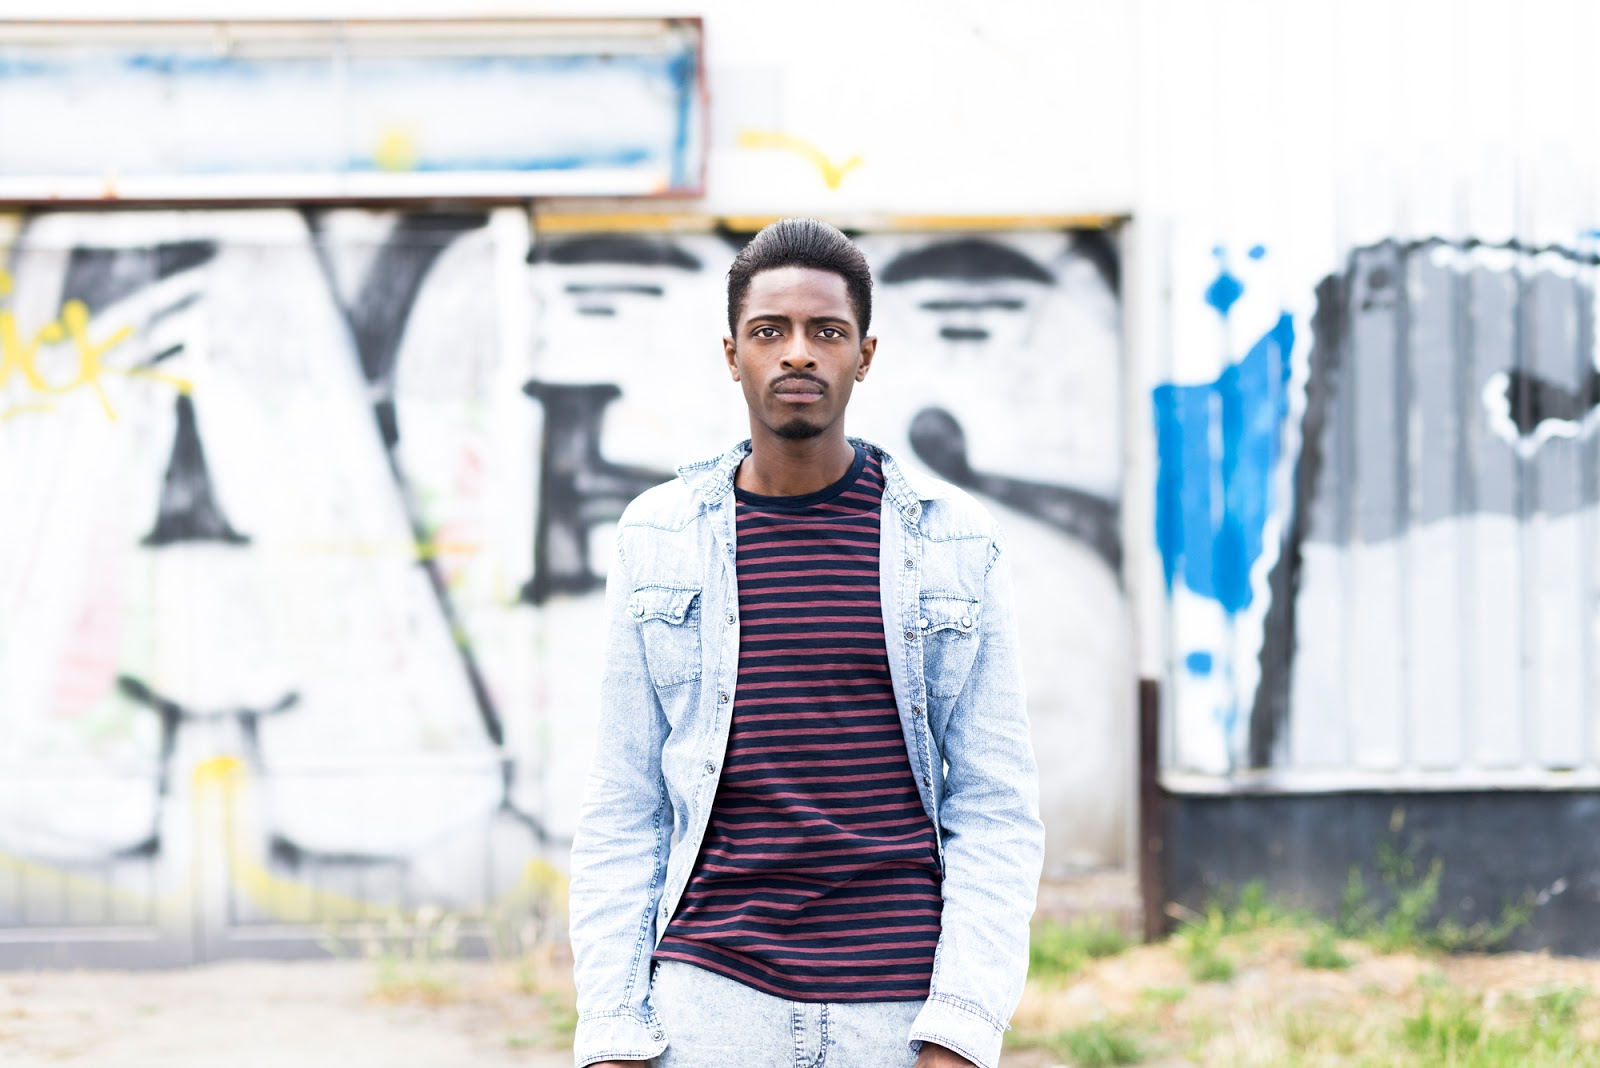 EXPERIMENTING WITH ACID BLUE & BURGUNDY: TRANSITIONAL STYLE SUMMER FALL WINTER 2015. zANEROBE JEANS FILIPPA K TEE JACK PURCELL X CONVERSE SNEAKERS SOULSTAR CLOTHING SHIRT BY JONTHEGOLD PHOTOGRAPHY BY DIDIER VAN HOVE LOCATION ANTWERP